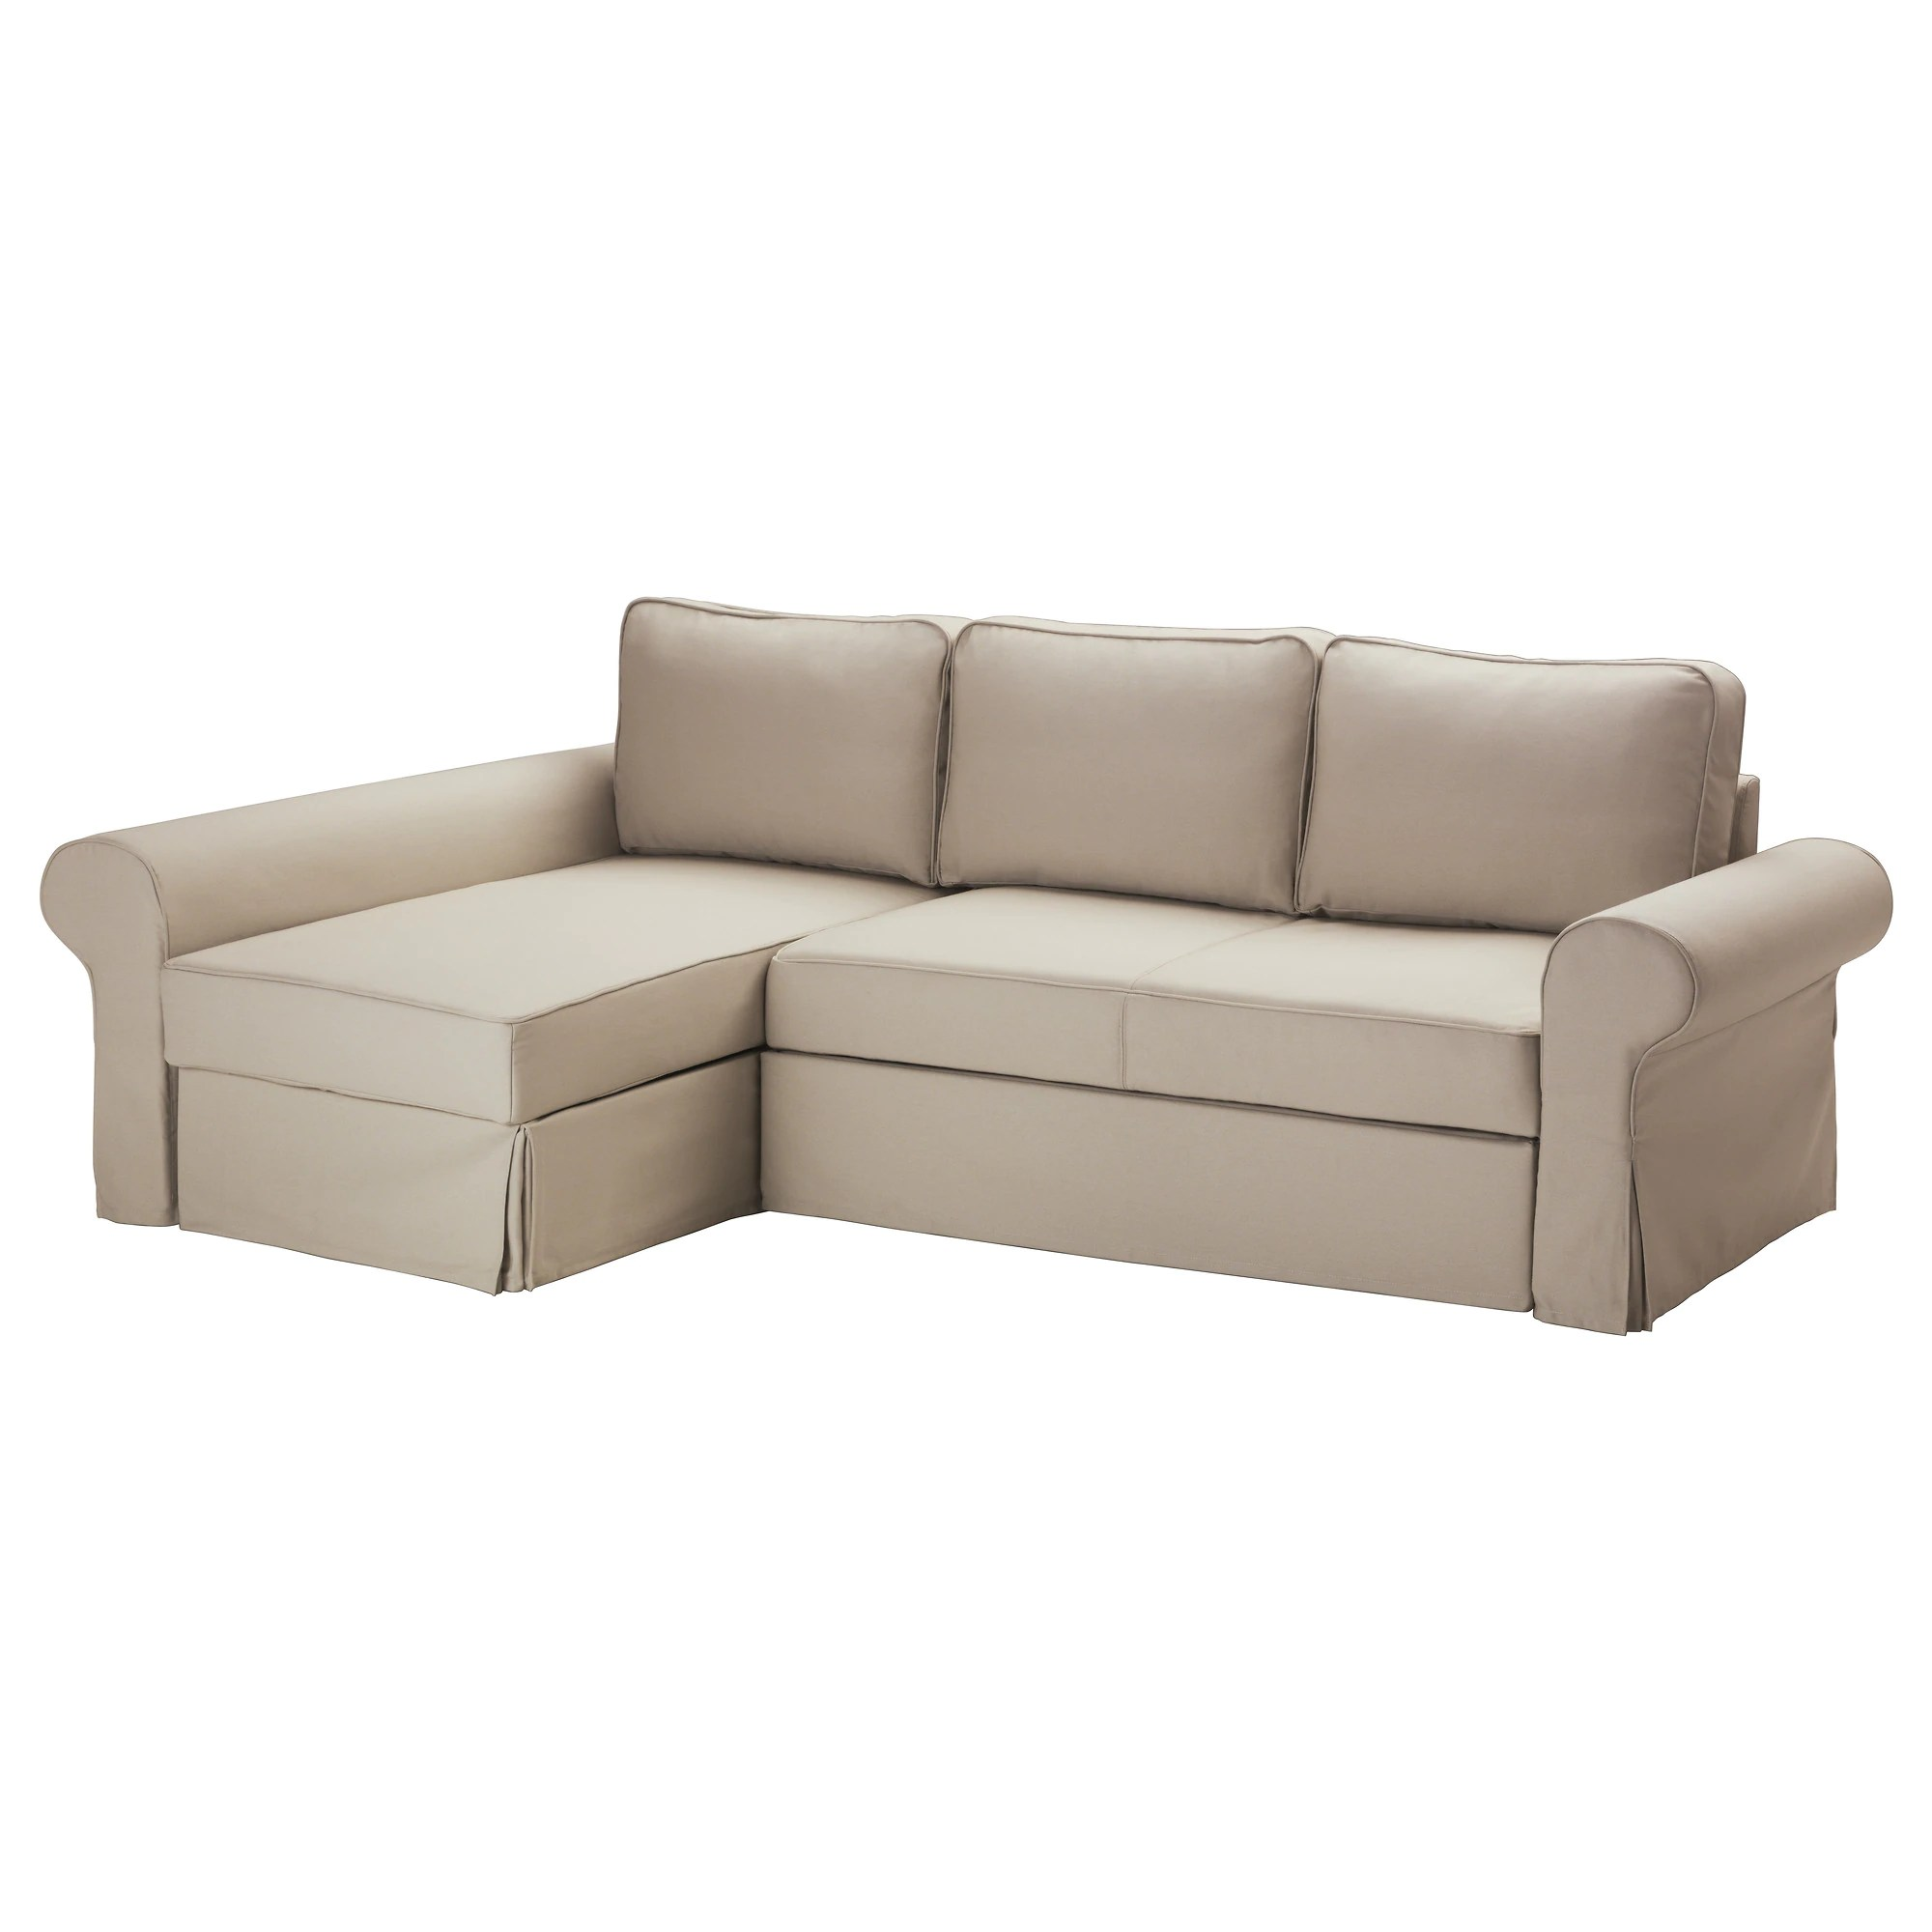 Backabro Ecksofa Backabro Bettsofa Recamiere Tygelsjö Beige Ikea